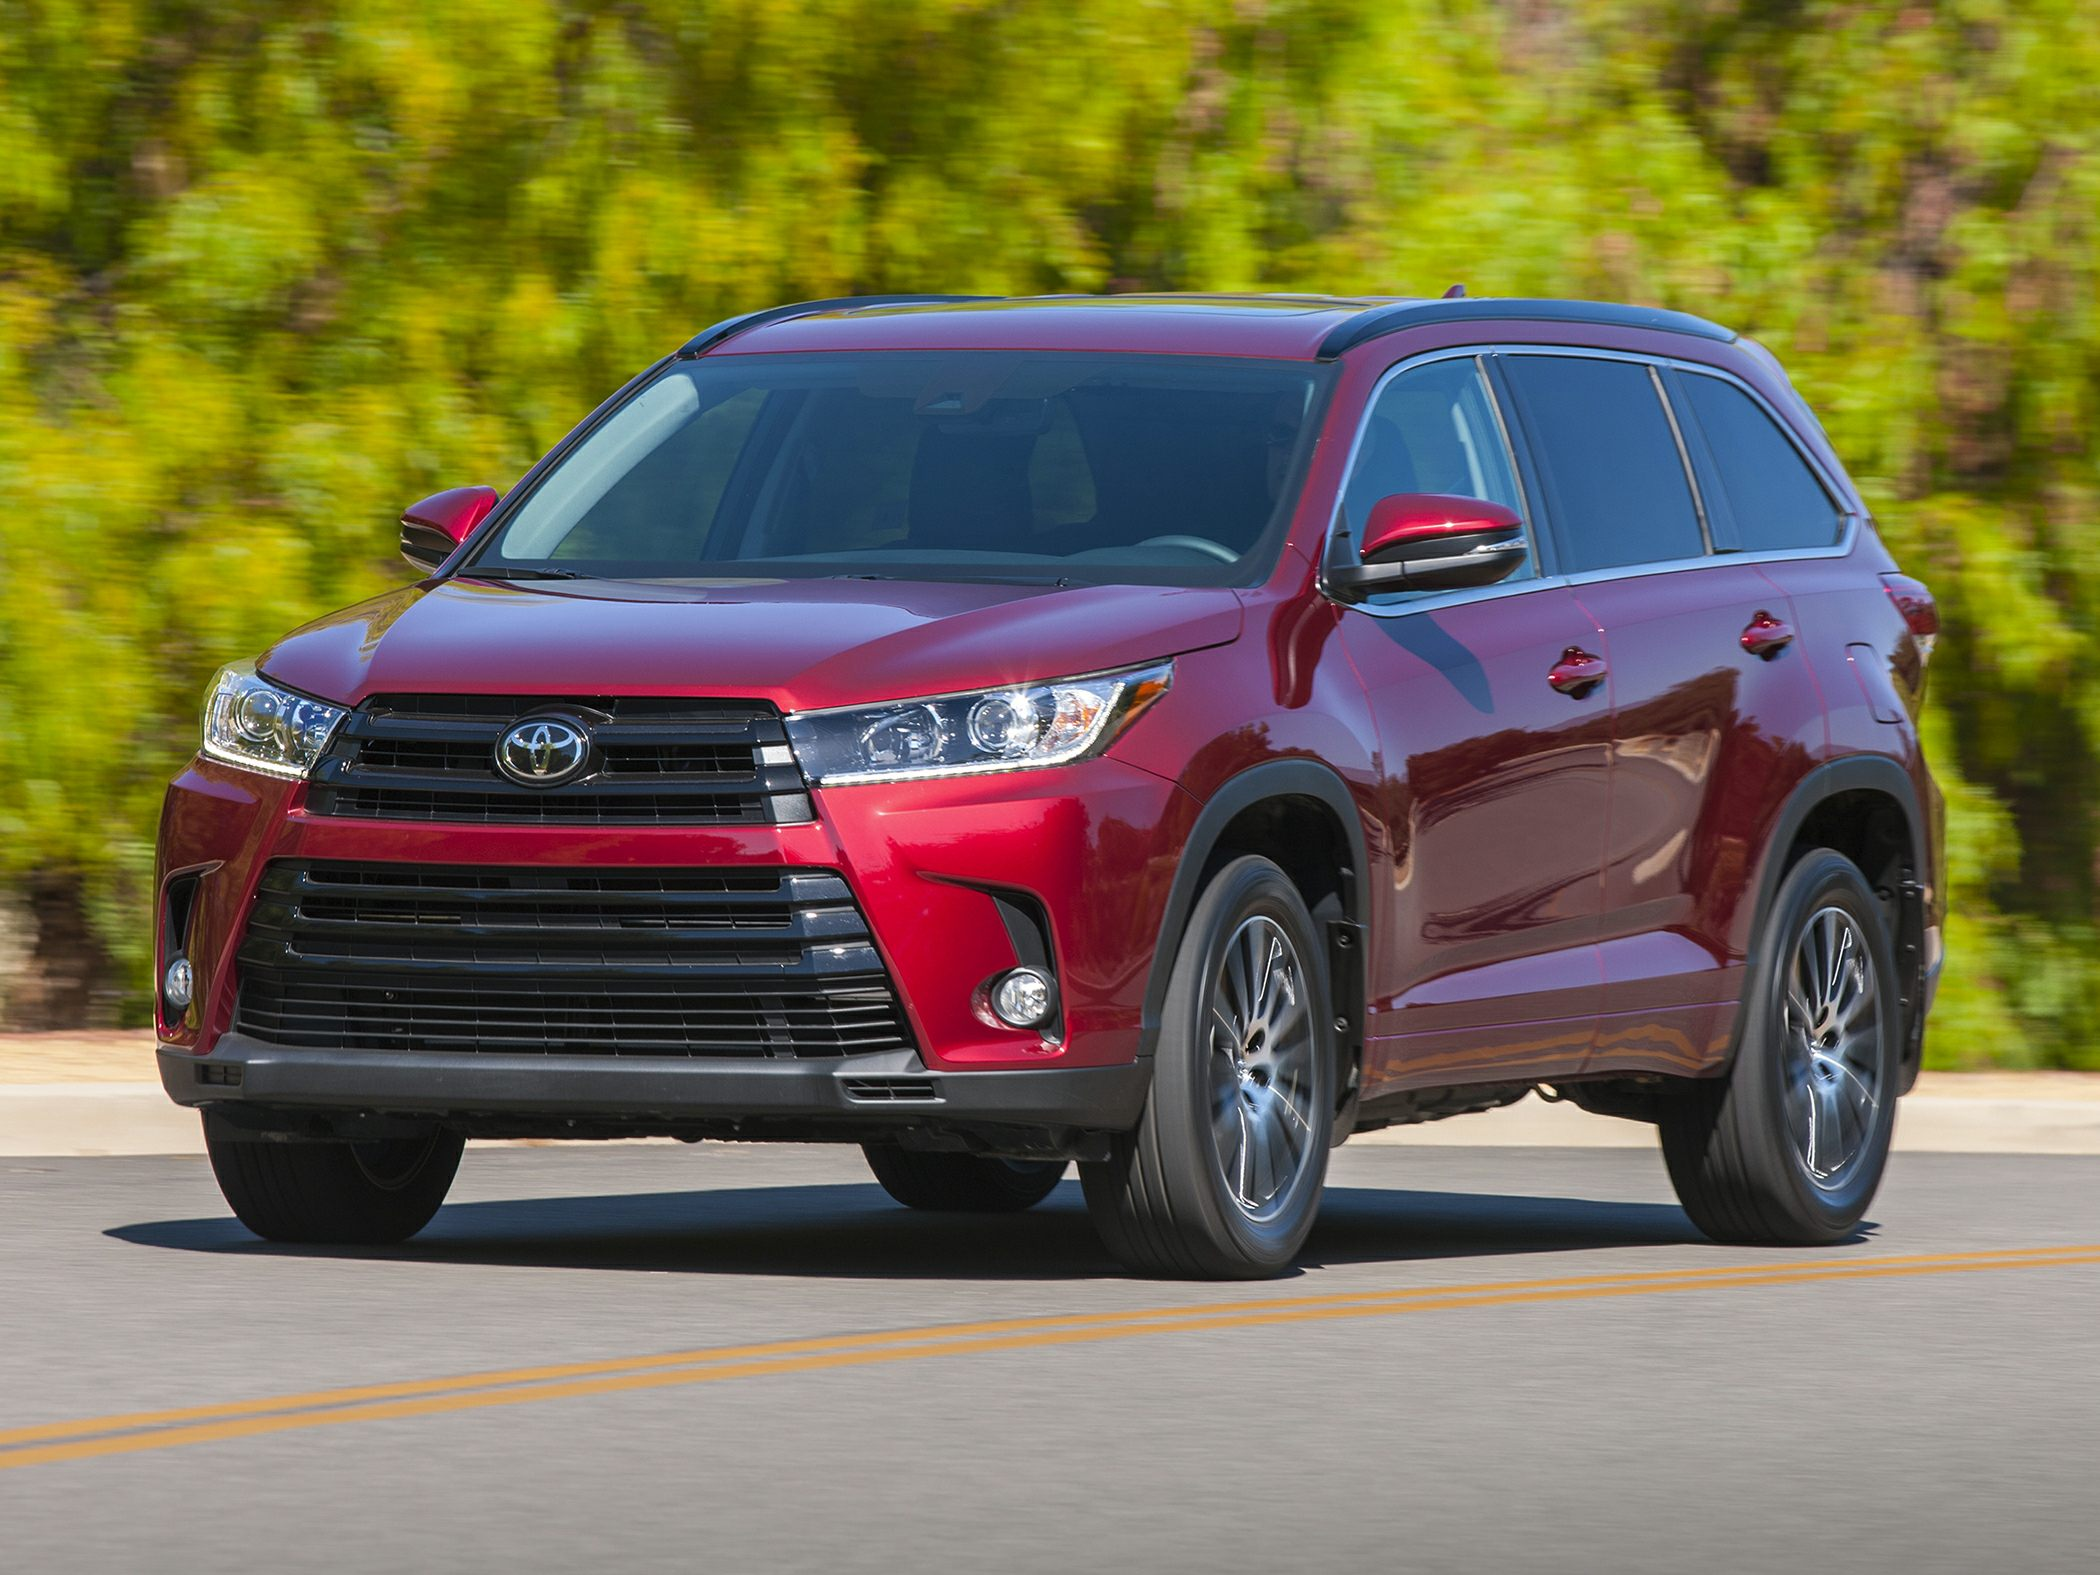 2017 toyota highlander deals prices incentives leases overview carsdirect. Black Bedroom Furniture Sets. Home Design Ideas